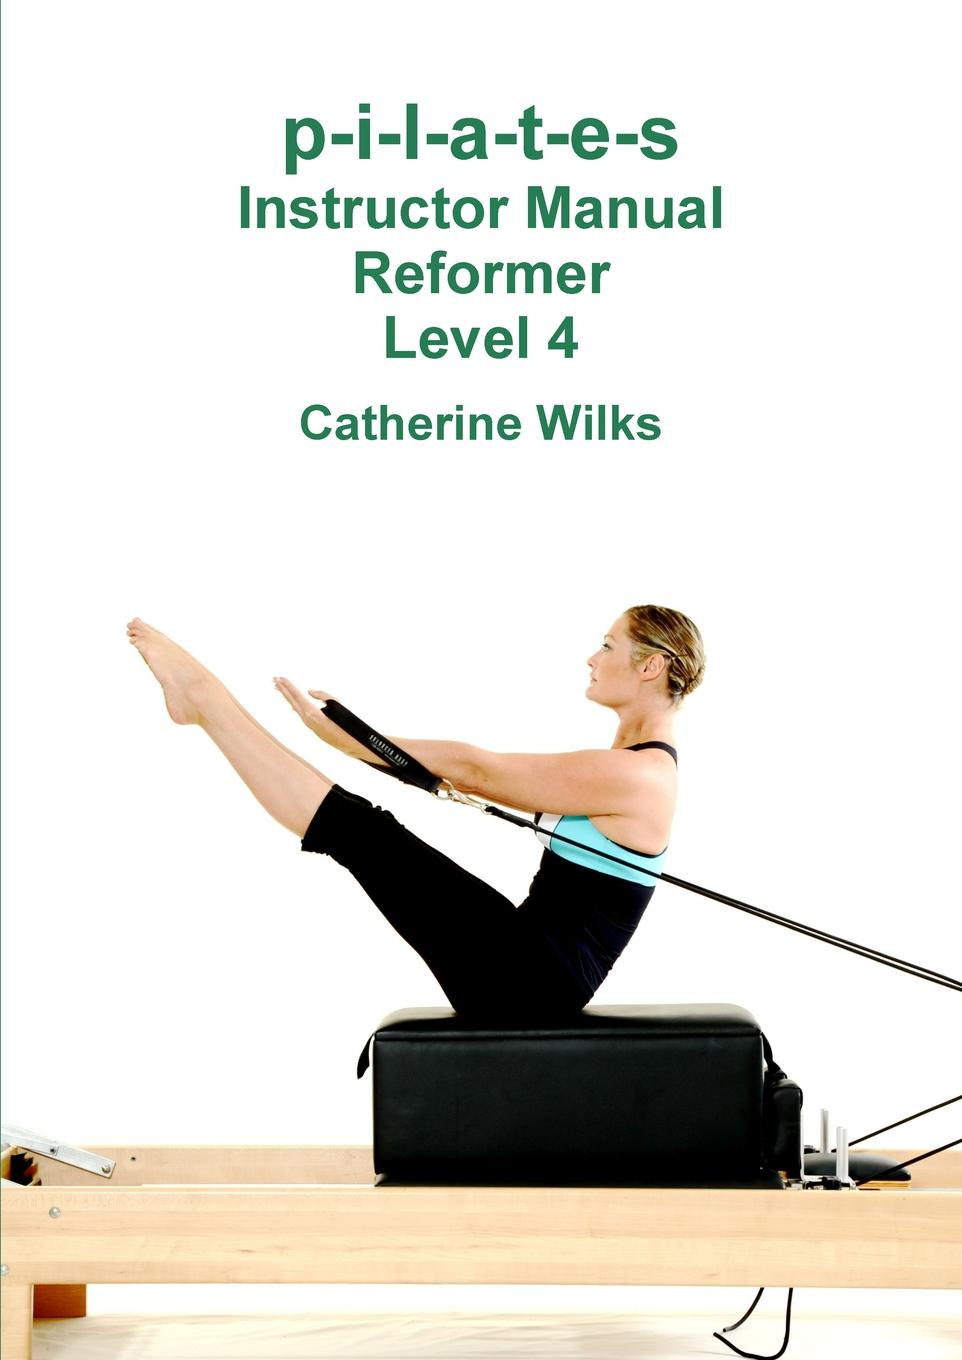 Catherine Wilks p-i-l-a-t-e-s Instructor Manual Reformer Level 4